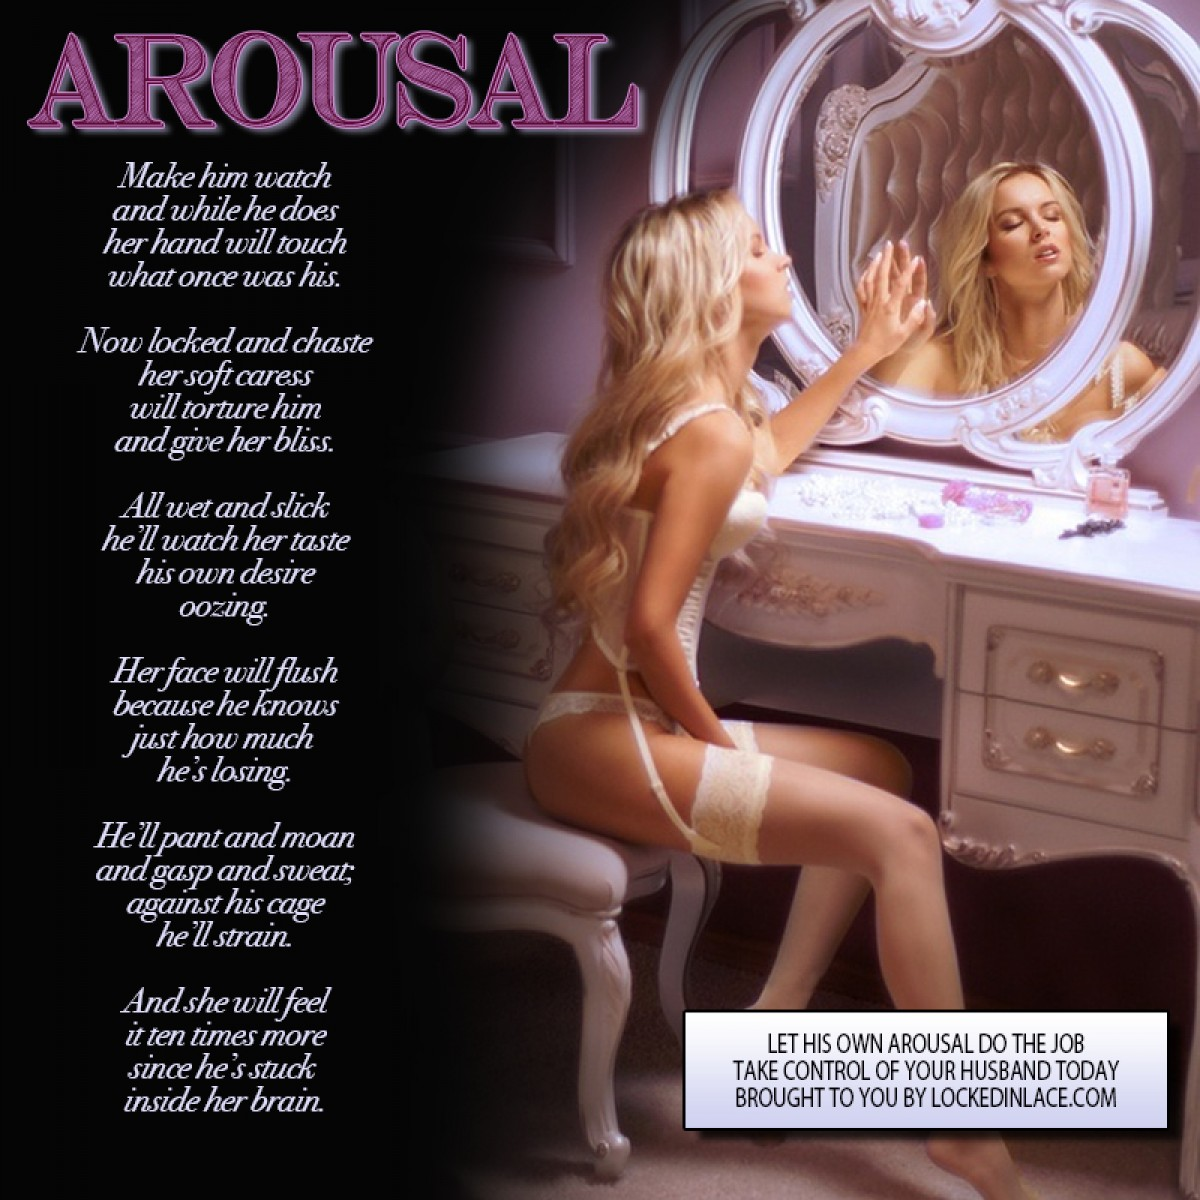 Arousal - Let His Own Arousal Do the Job